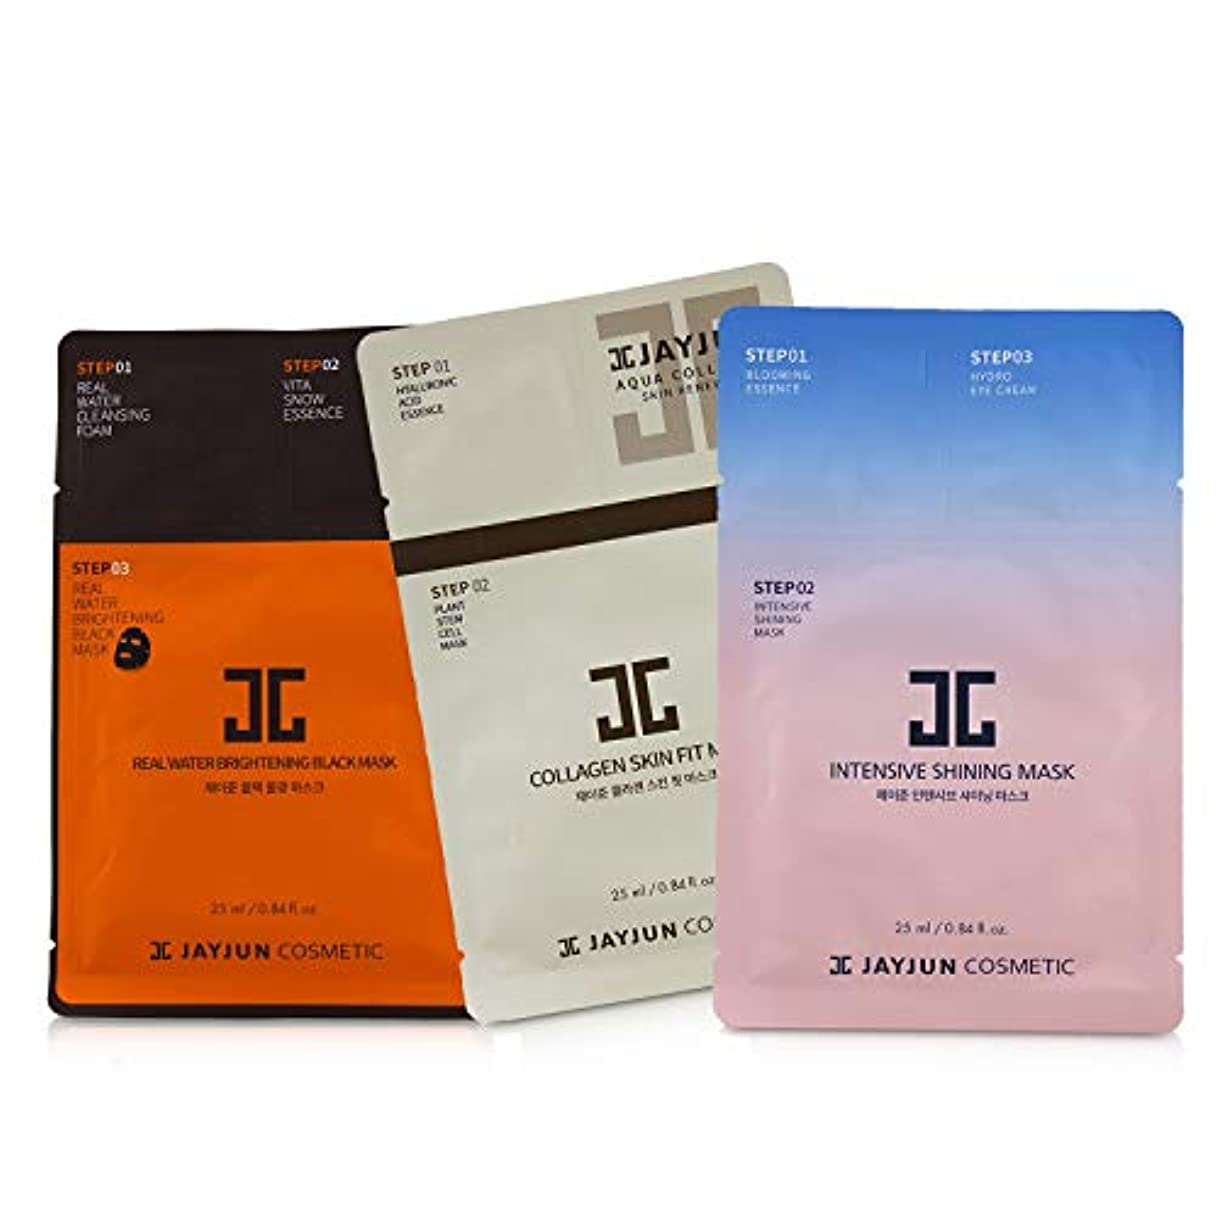 ジーンズ飢ノイズジェイジュン Best Seller Mask Set (2x Intensive Shining, 2x Real Water Brightening, 2x Collagen Skin) 6sheets並行輸入品